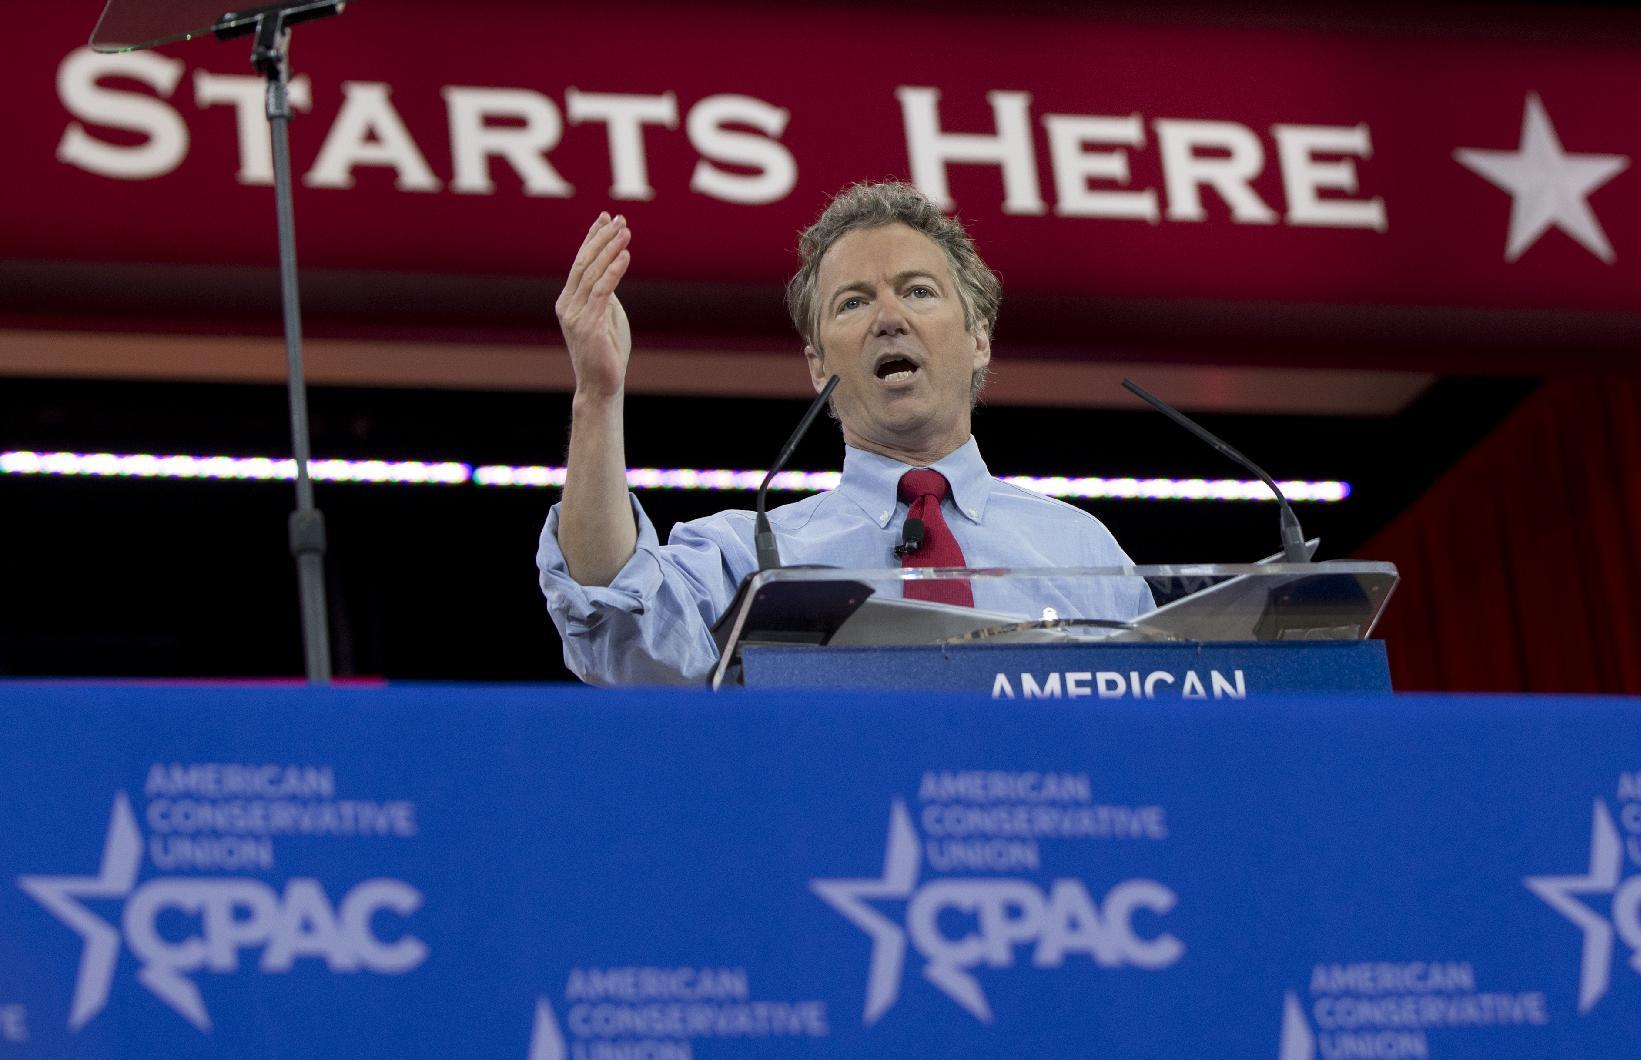 Rand Paul wins CPAC straw poll, Scott Walker close second